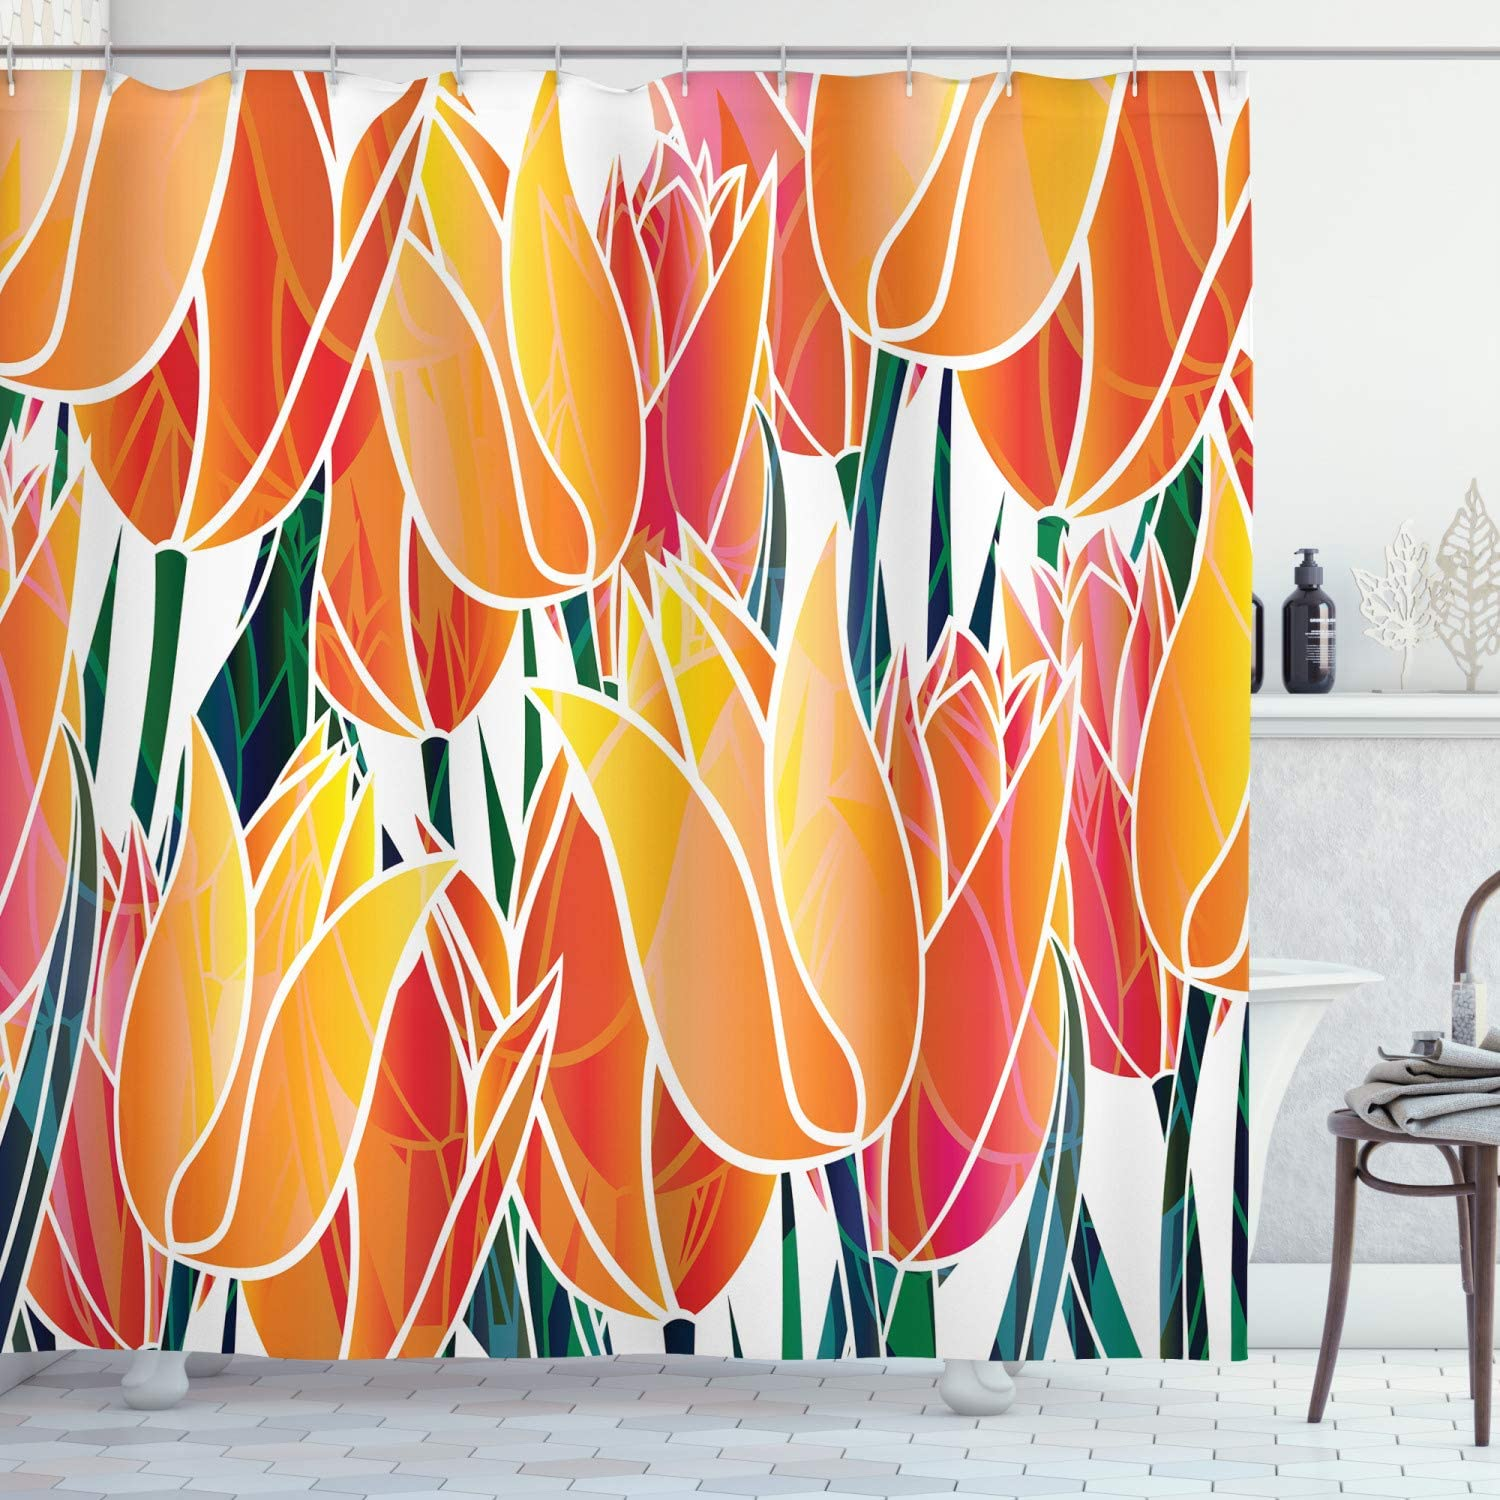 Ambesonne Tulip Shower Curtain, Exquisite Flourishing Tulip Garden with Vivid Colored Endless Petals Eco Illustration, Cloth Fabric Bathroom Decor Set with Hooks, 70